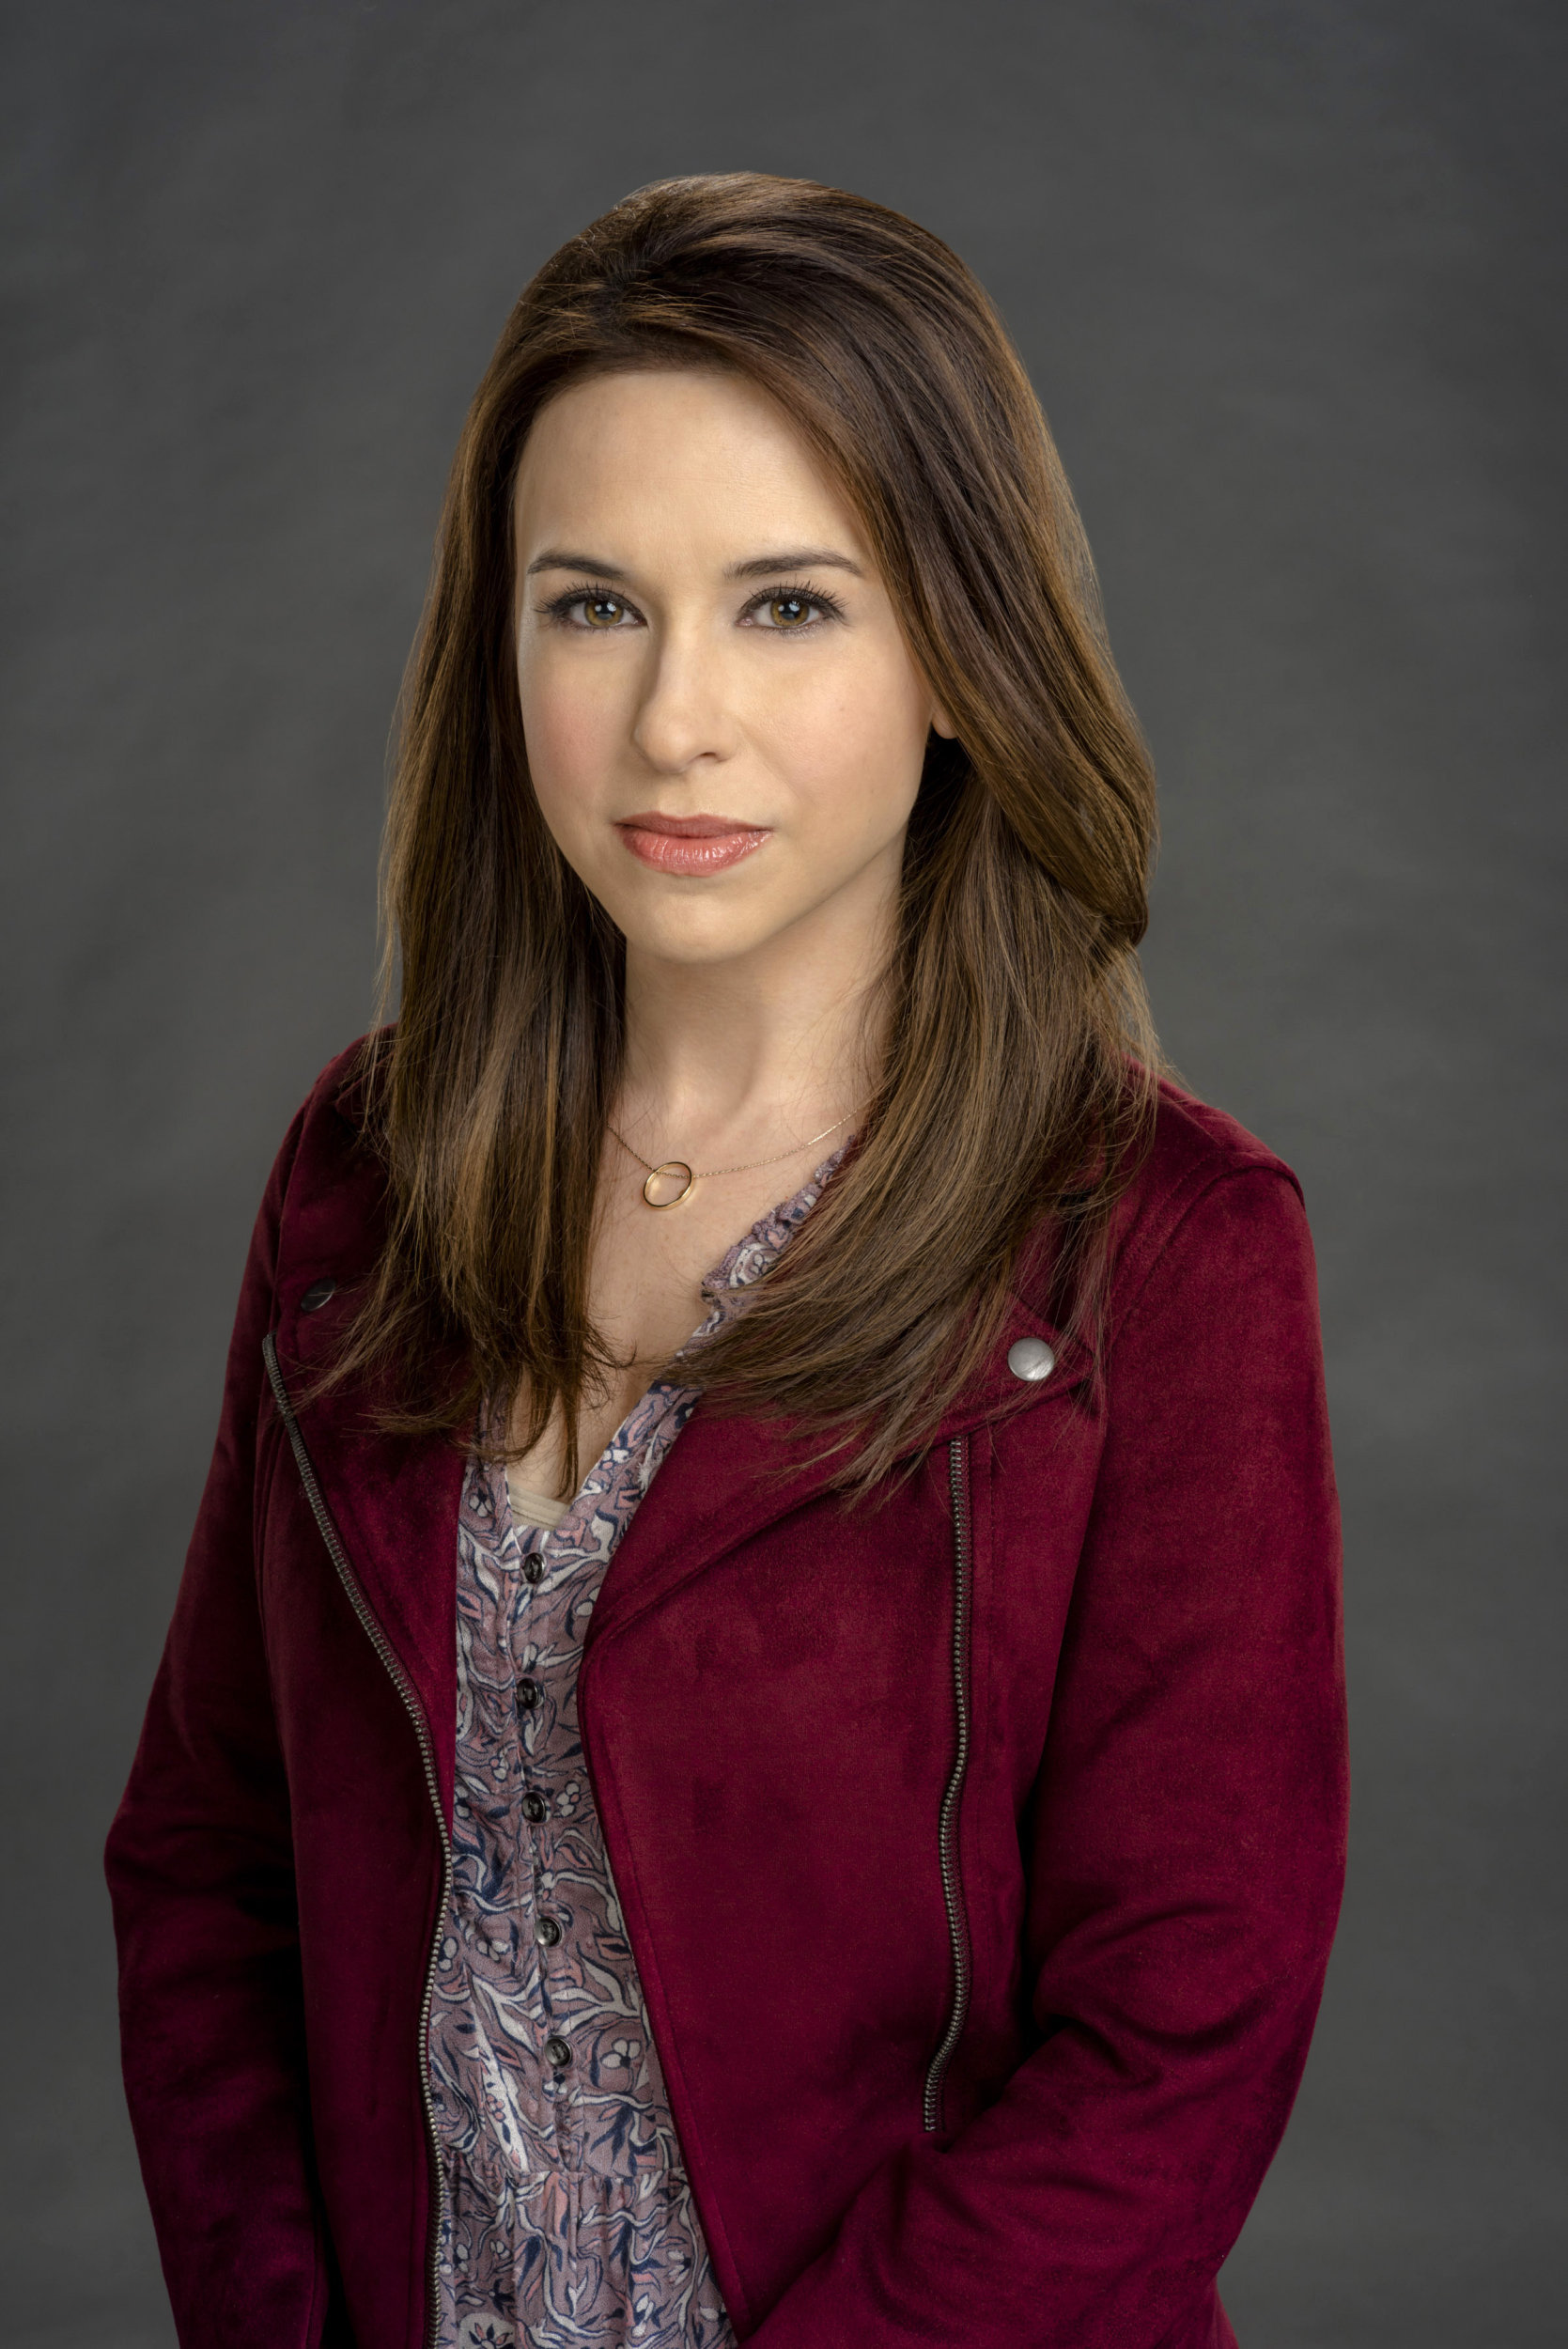 Discussion on this topic: Ruth Royce, lacey-chabert/